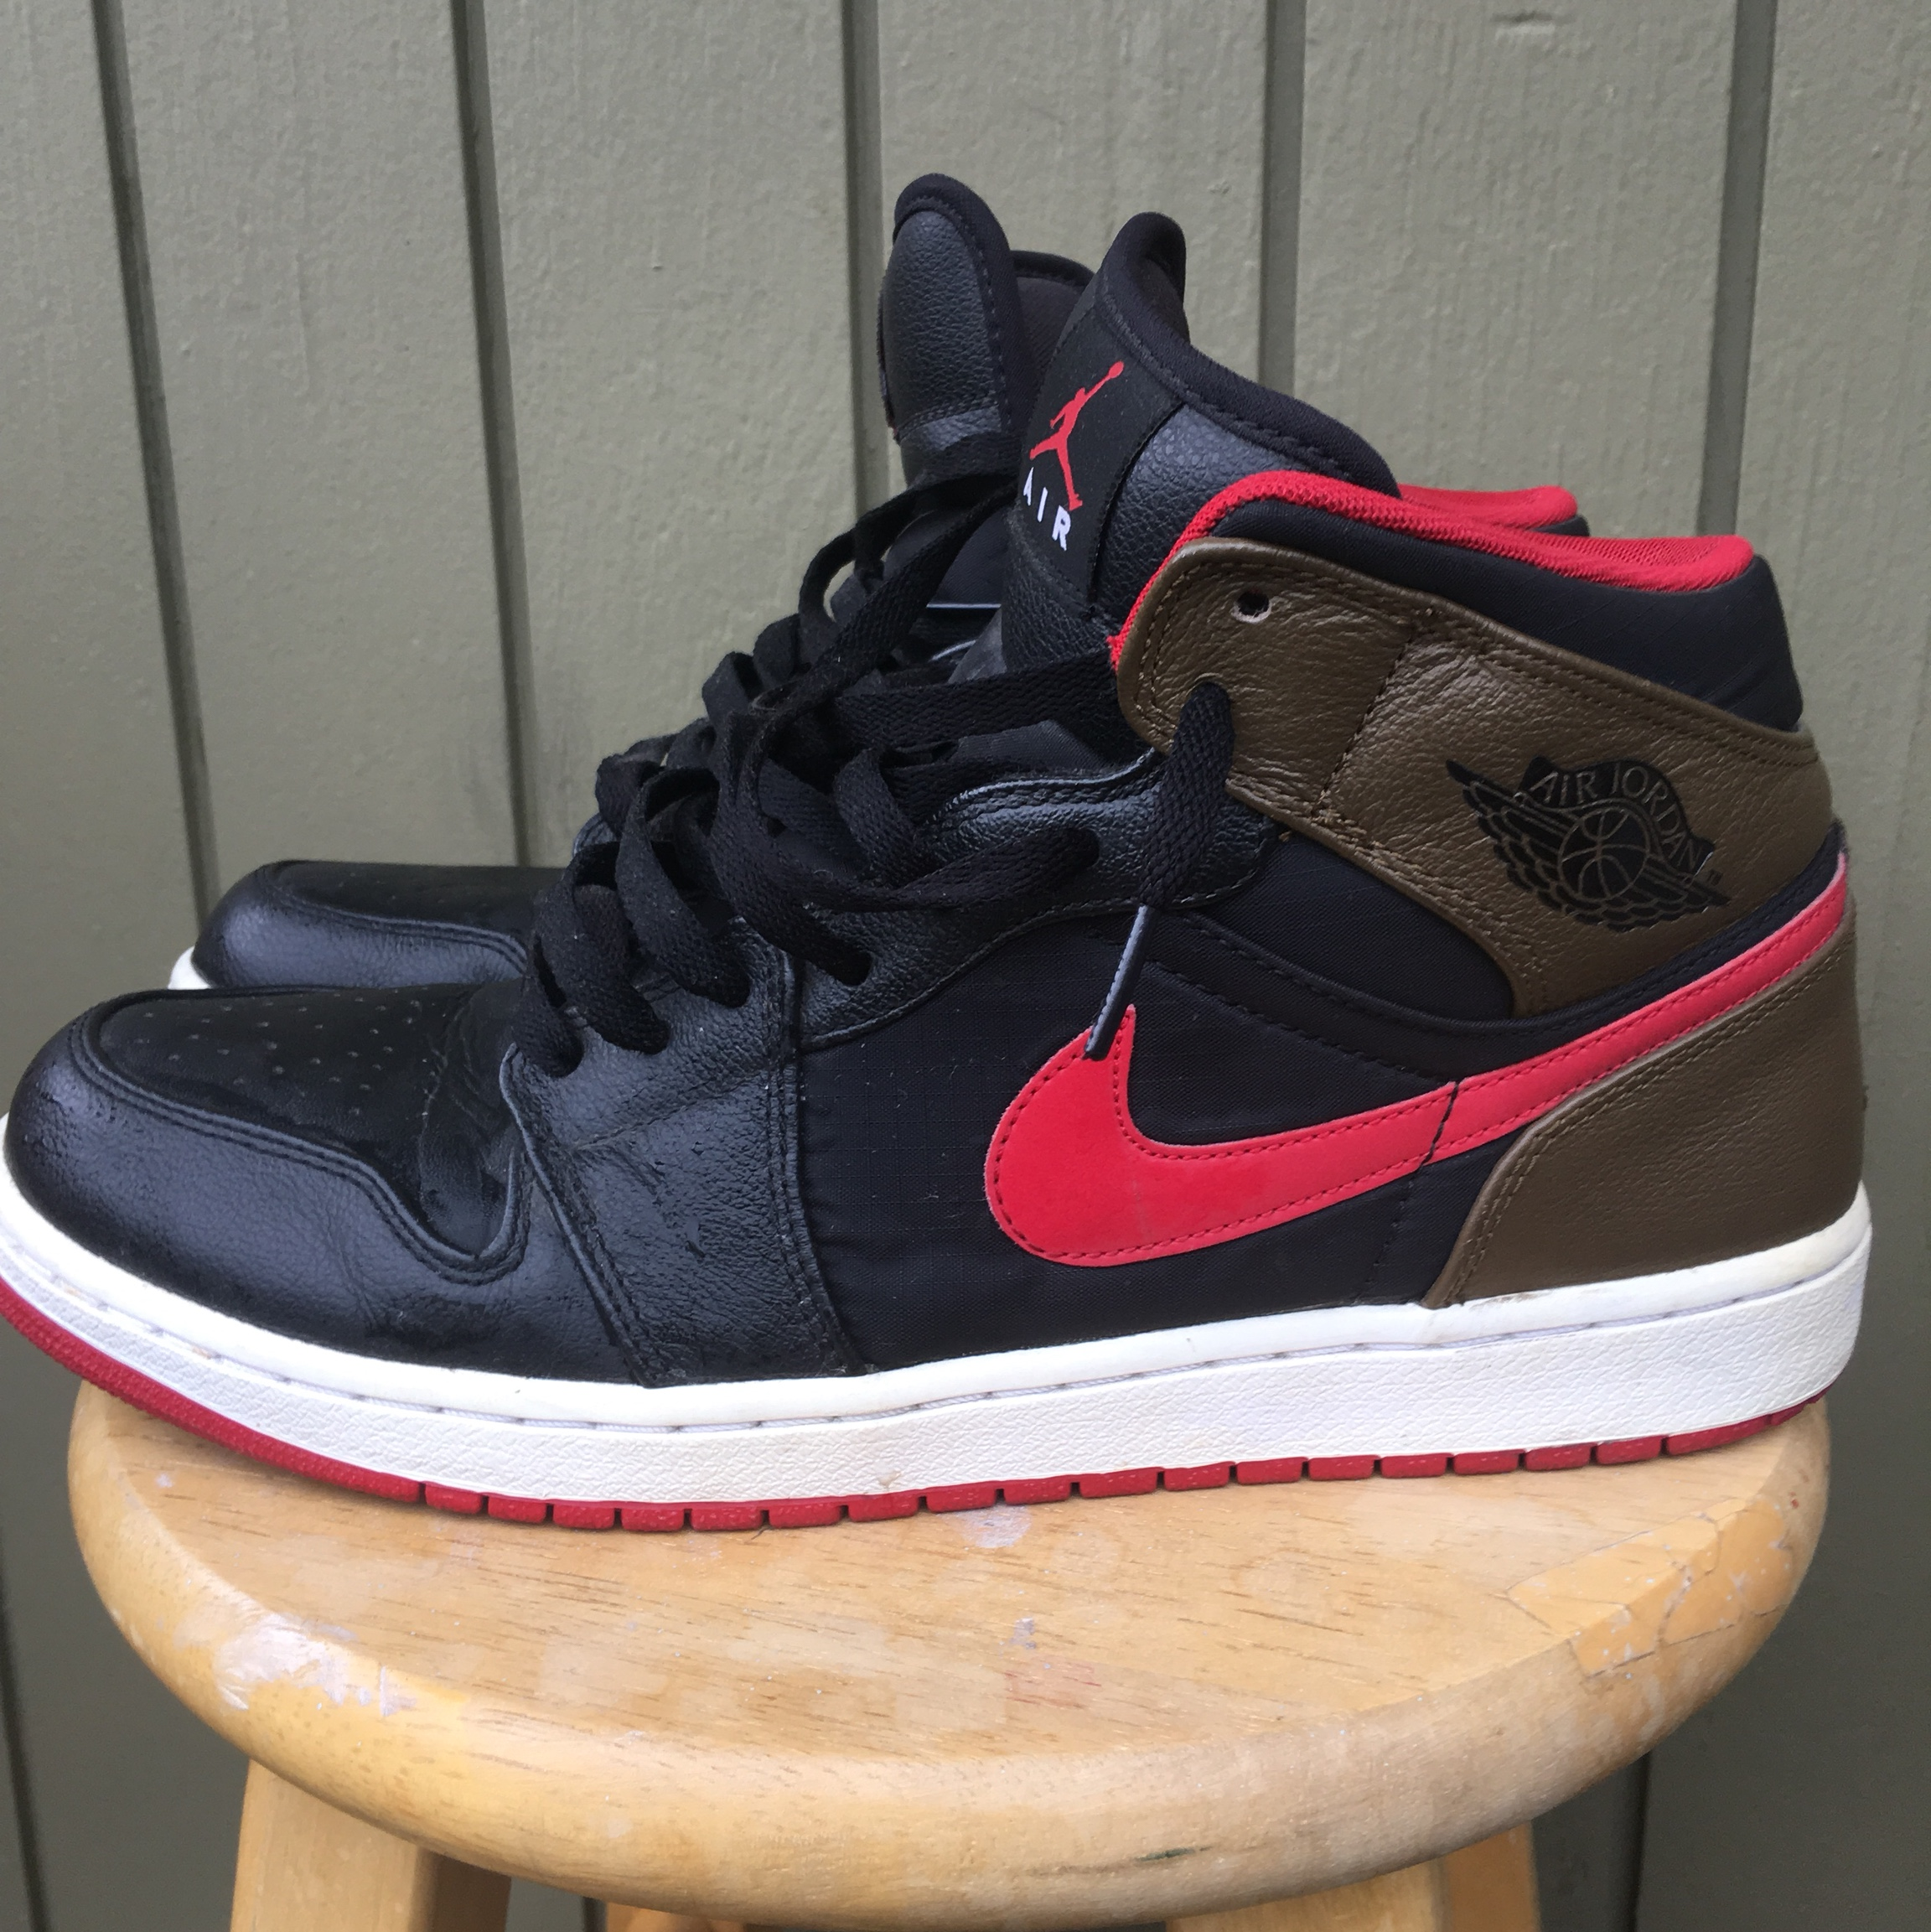 authentic quality multiple colors reasonable price Air Jordan 1 Black/Red/Brown 7/10 due to creases in... - Depop